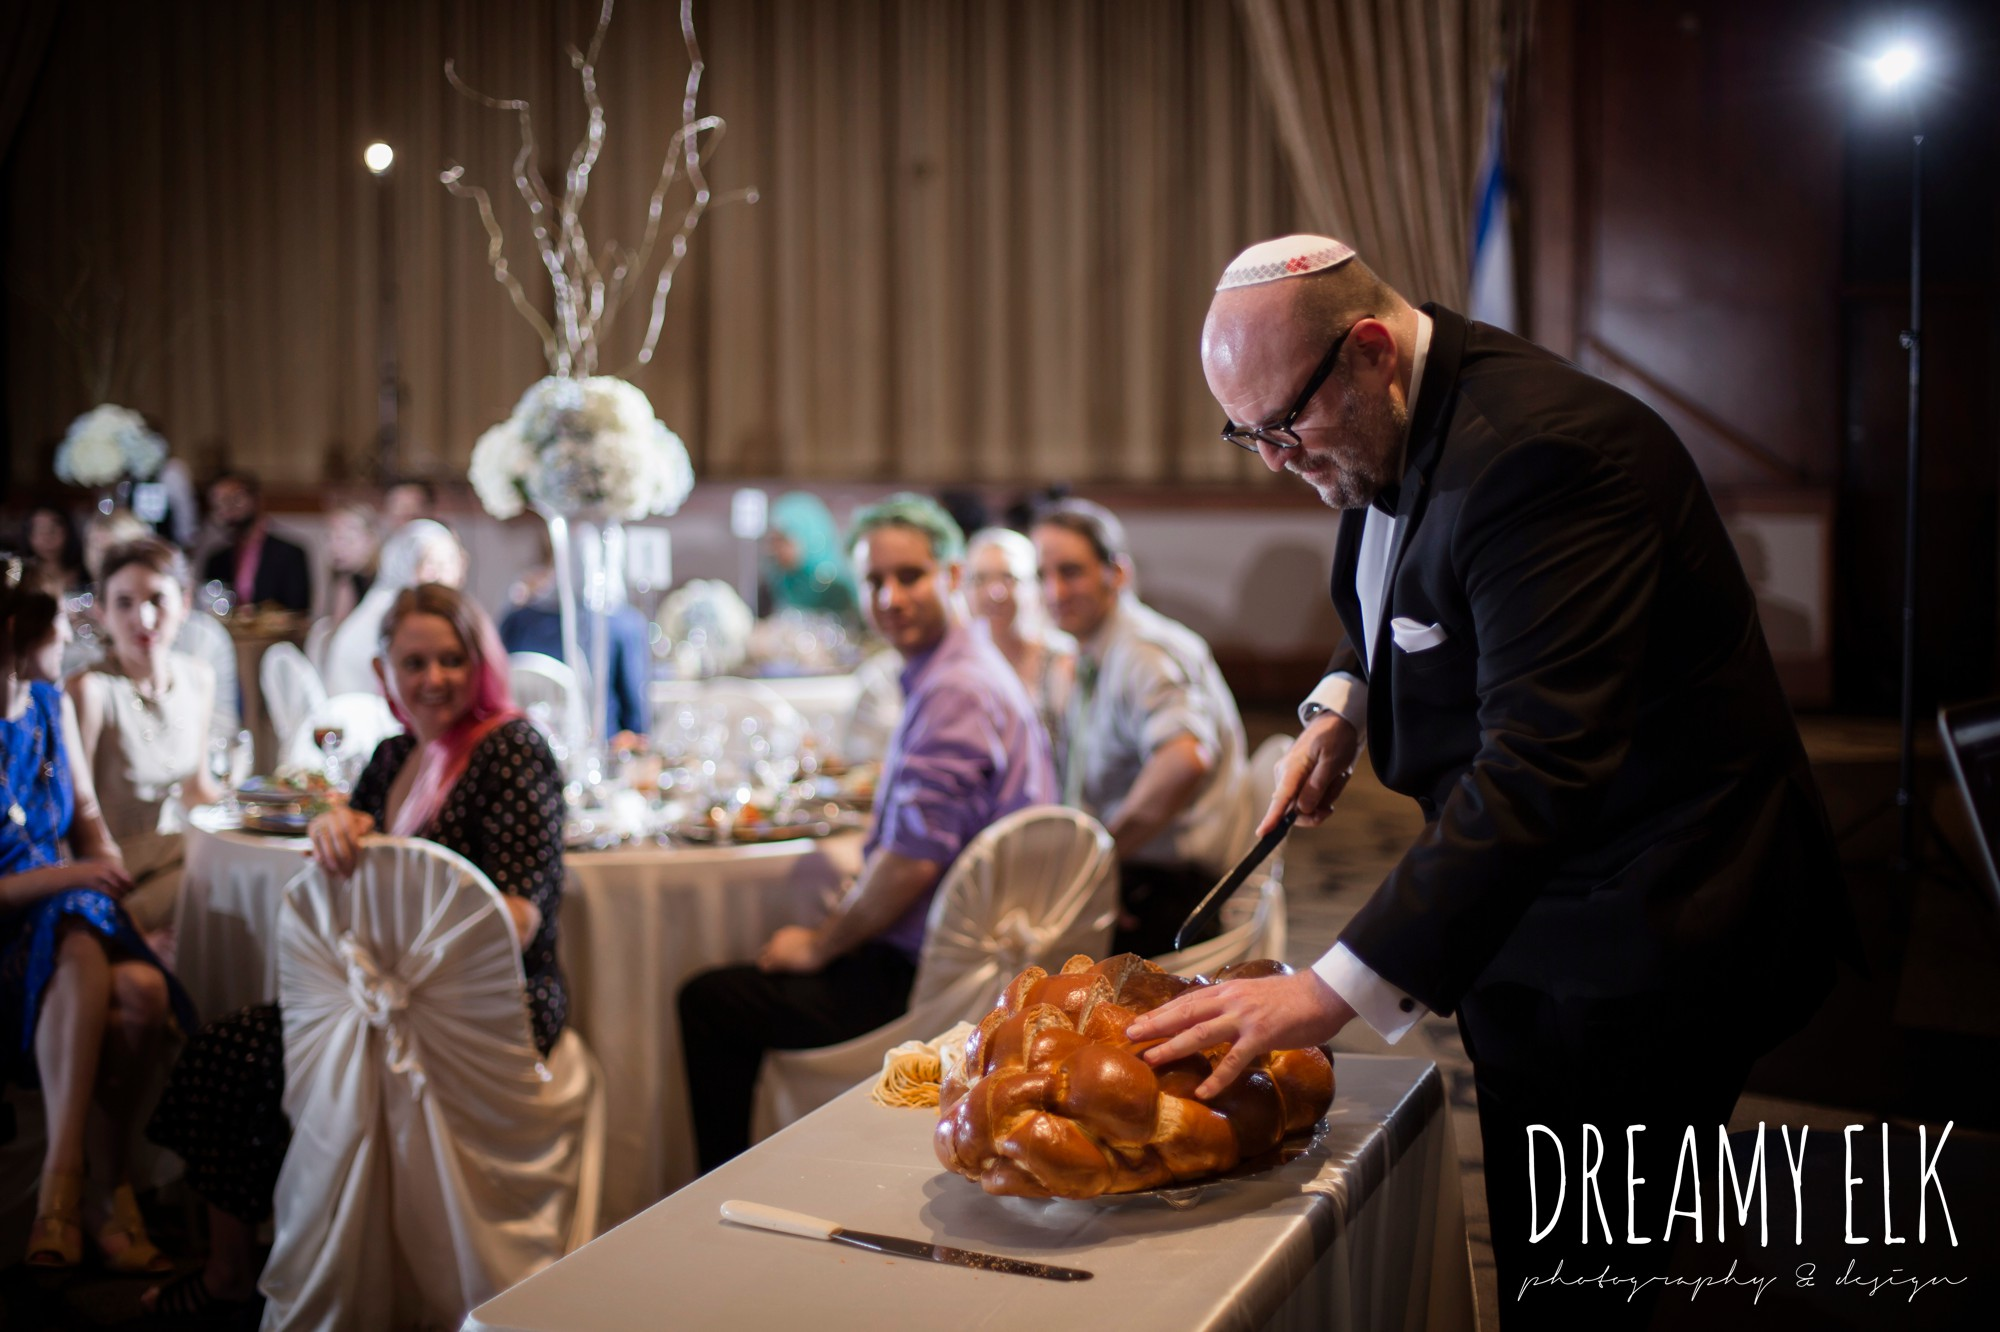 blessing and cutting challah bread, summer june jewish wedding photo {dreamy elk photography and design}